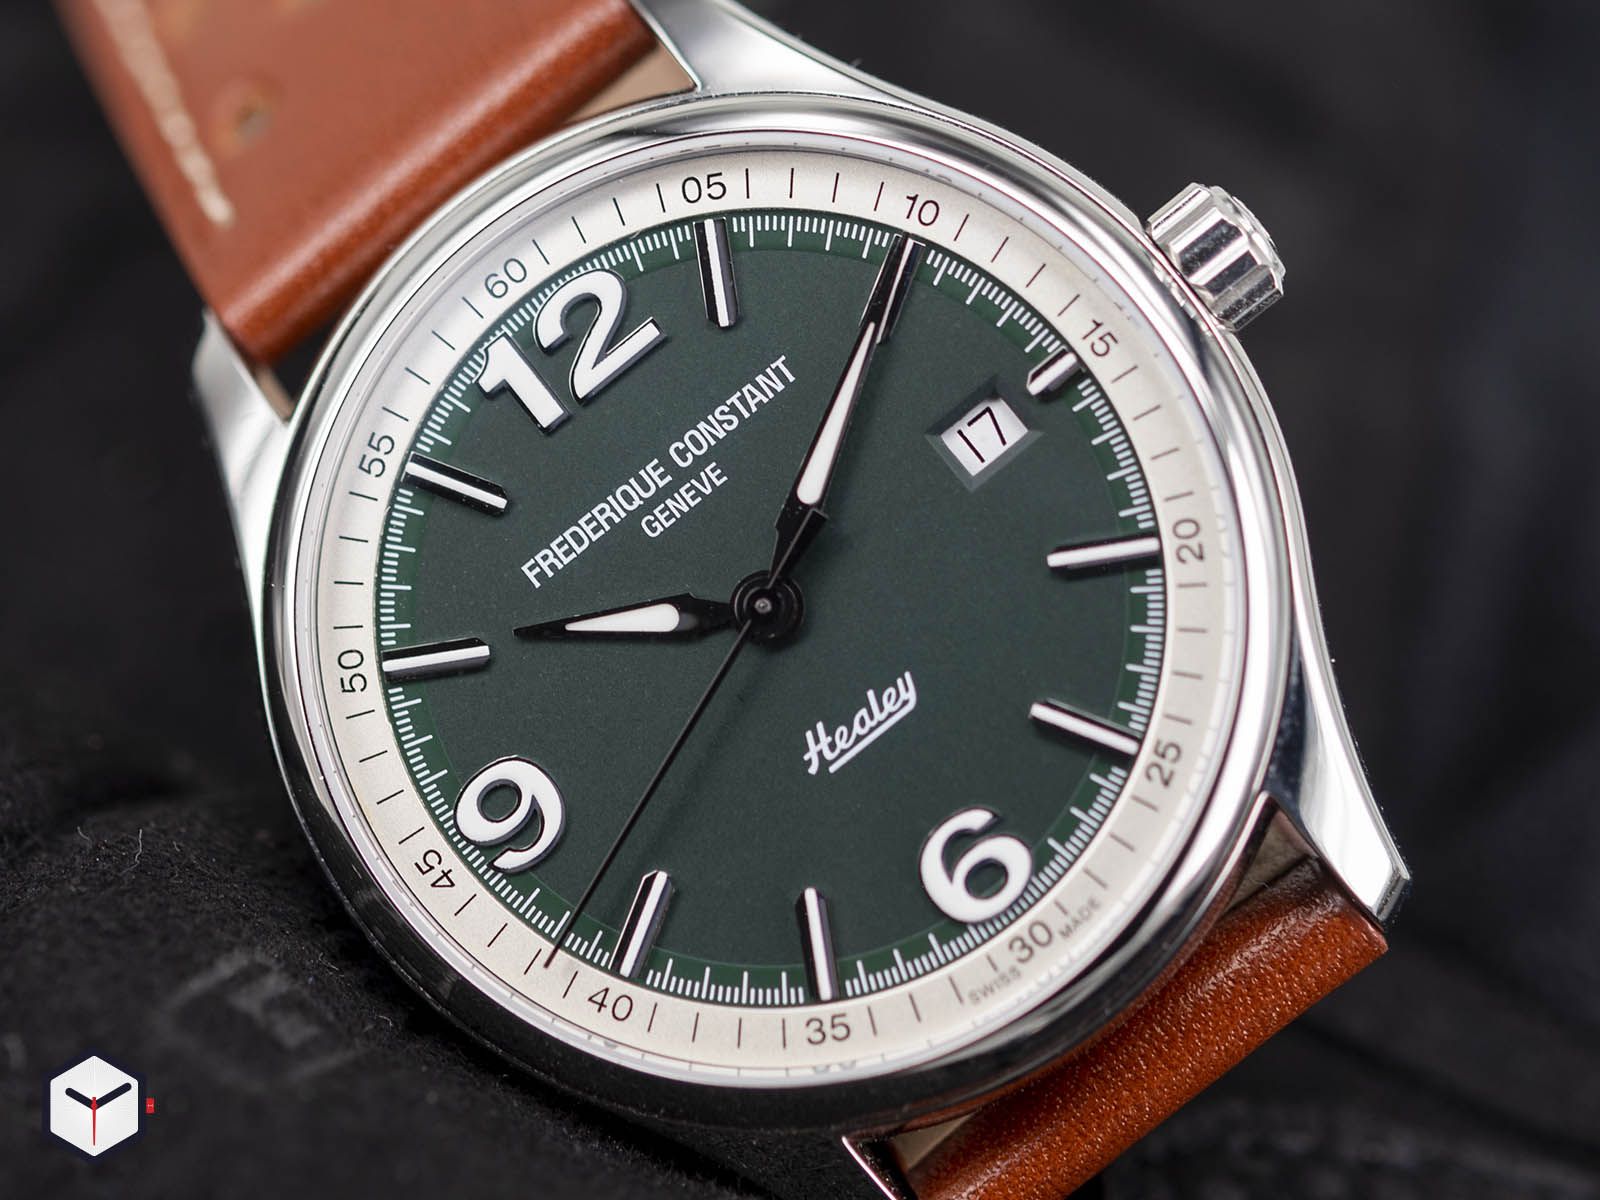 fc-303hgrs5b6-frederique-constant-vintage-rally-healey-automatic-4.jpg